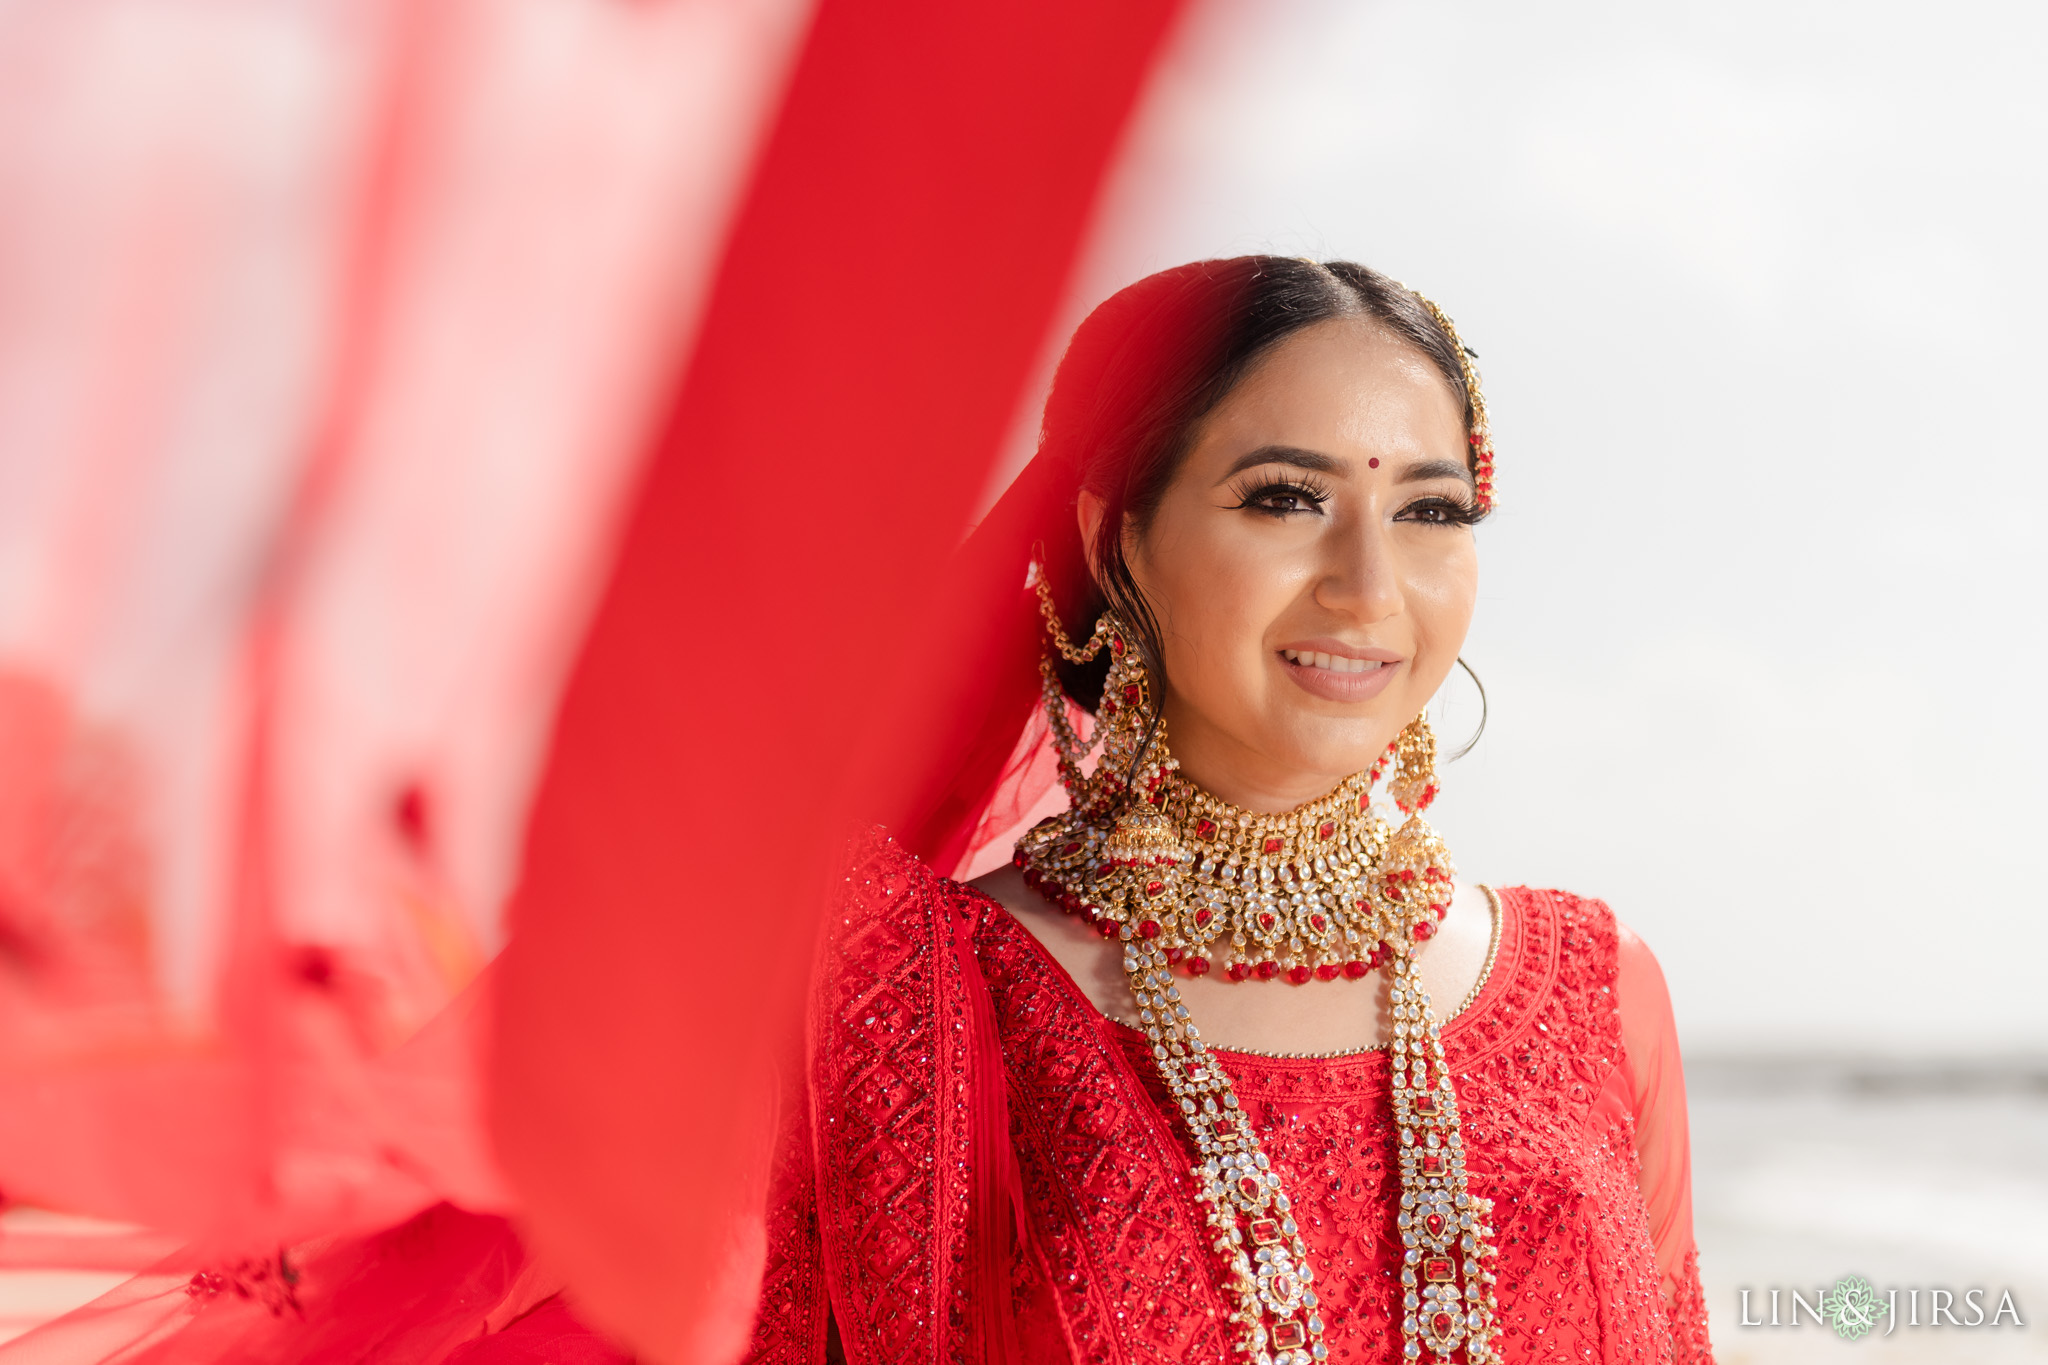 08 Generations Riviera Maya Cancun Mexico South Asian Bride Wedding Photography